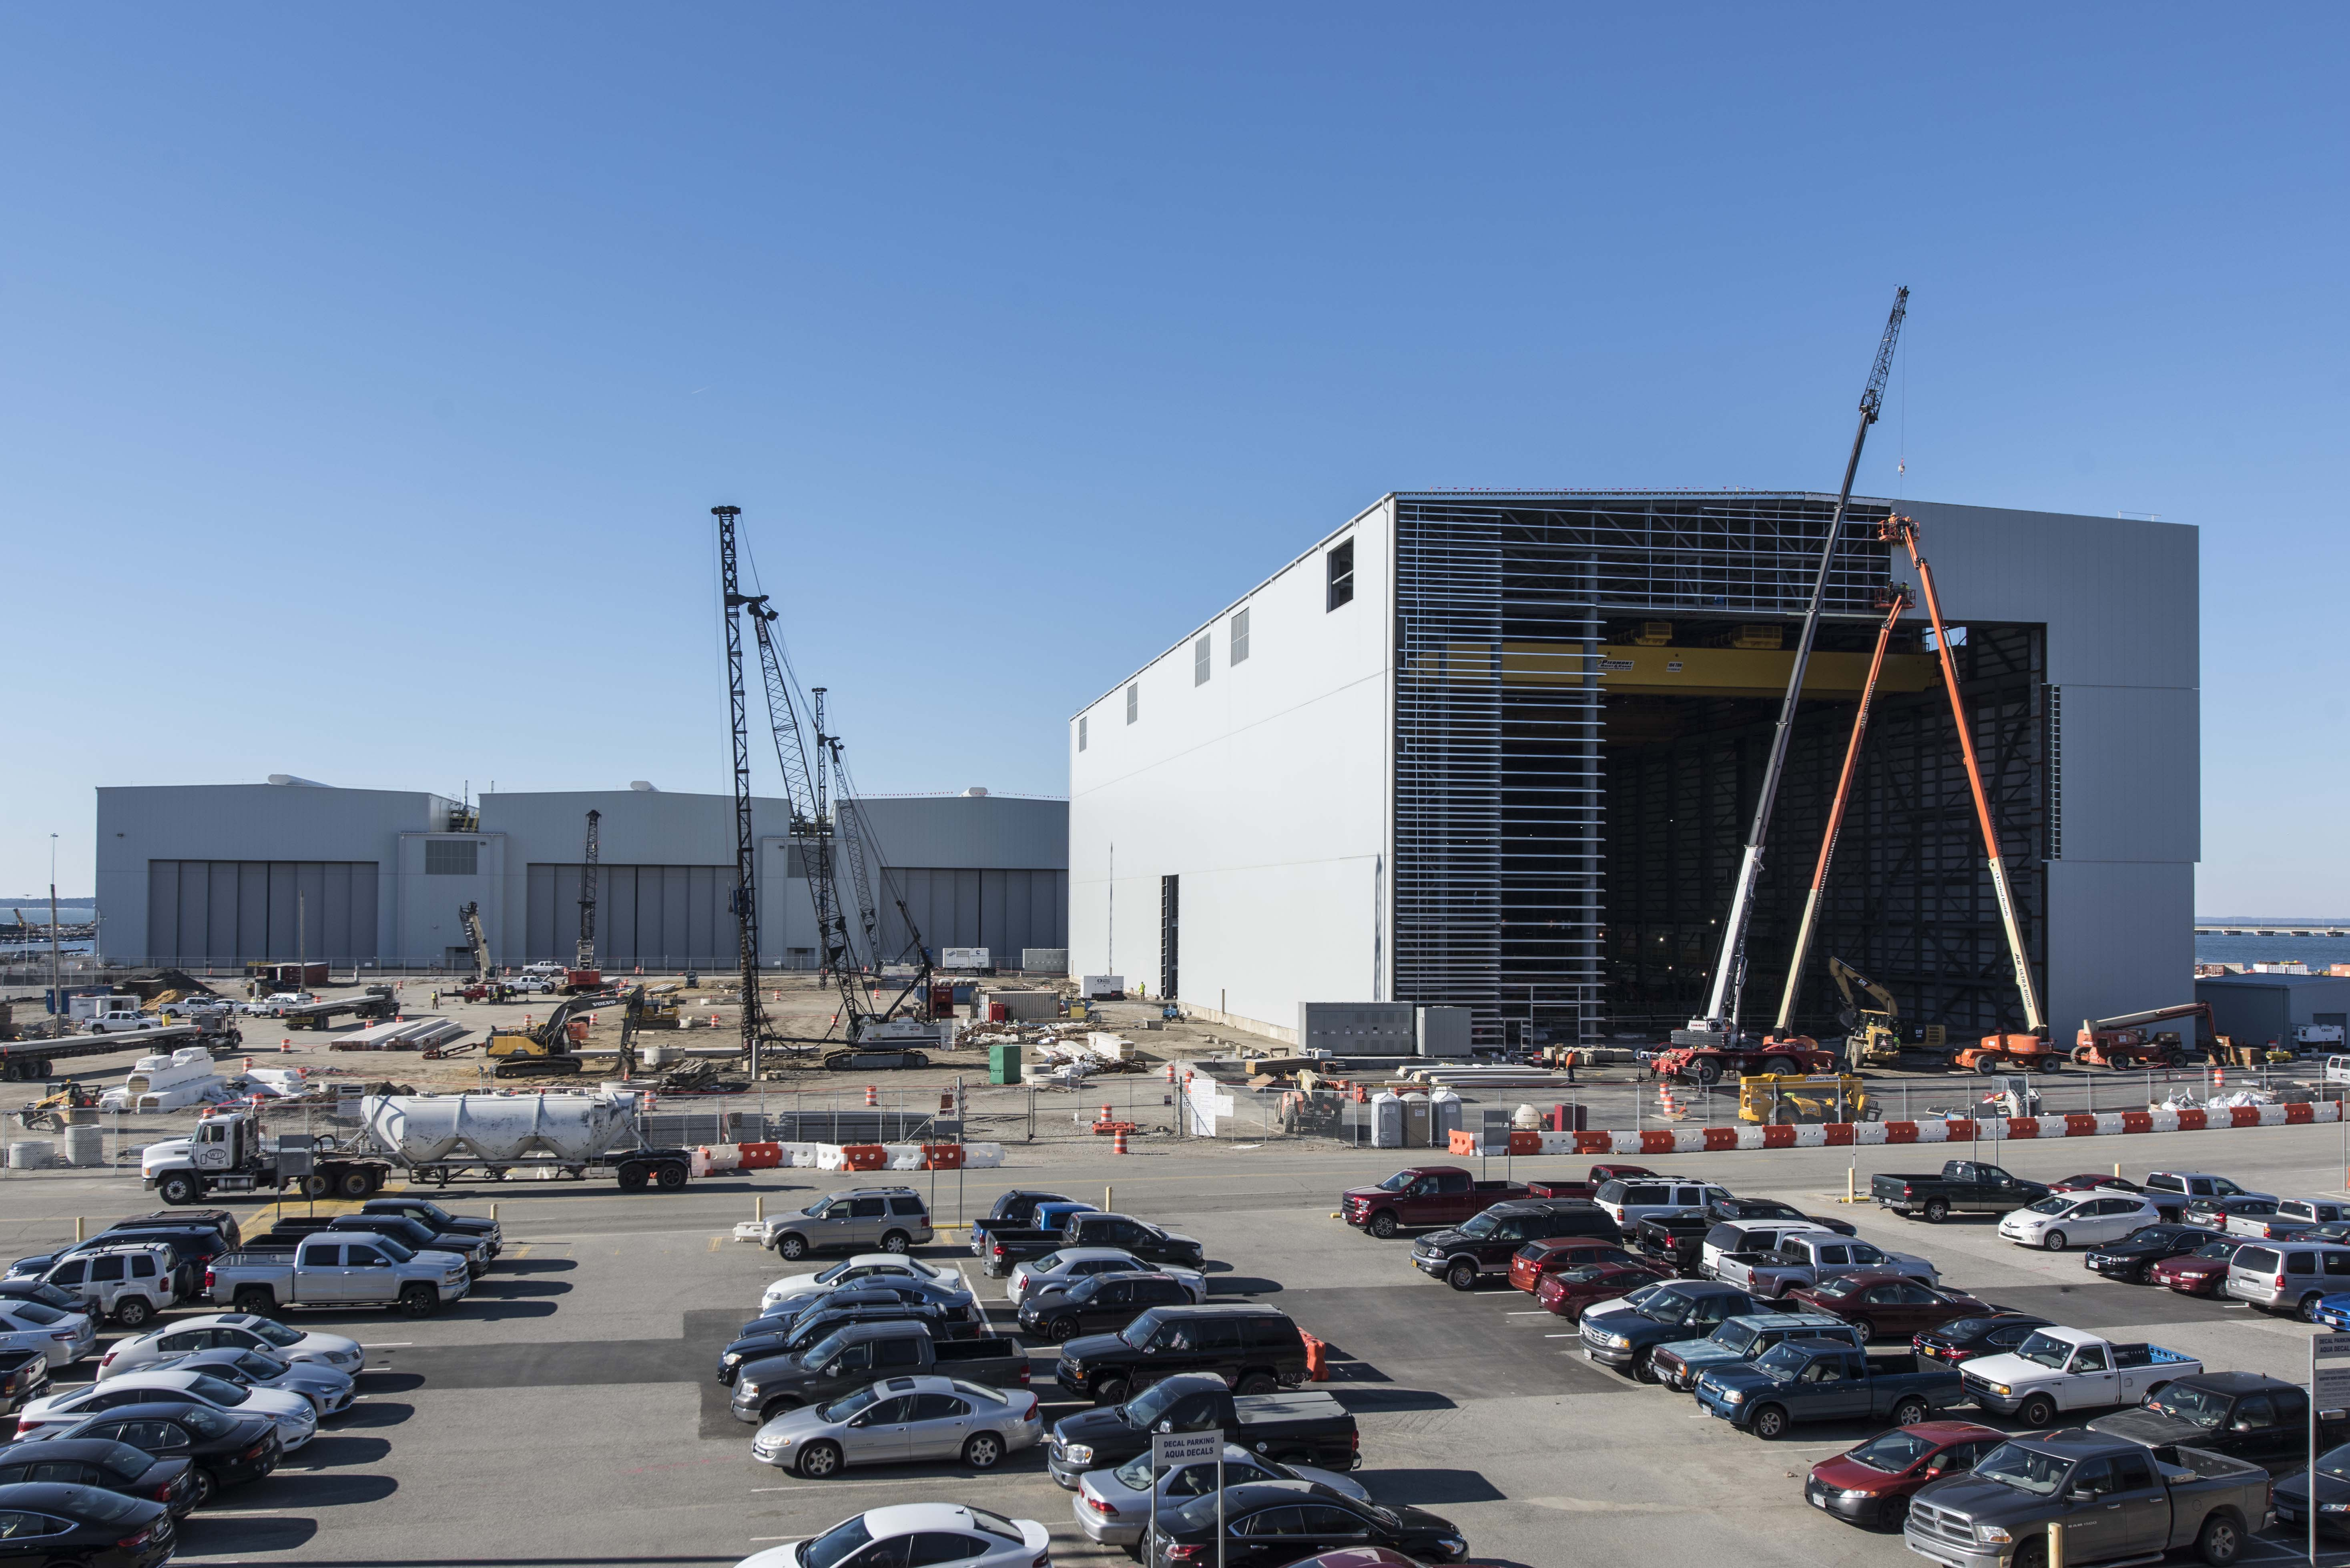 Newport News Shipbuilding's Joint Manufacturing Assembly Facility (JMAF) opened in 2017. The state-of-the-art facility supports submarine and aircraft carrier construction and features multiple worksites, advanced technology, automated equipment, heavyweight cranes, large transportation doors and specialty paint bays.